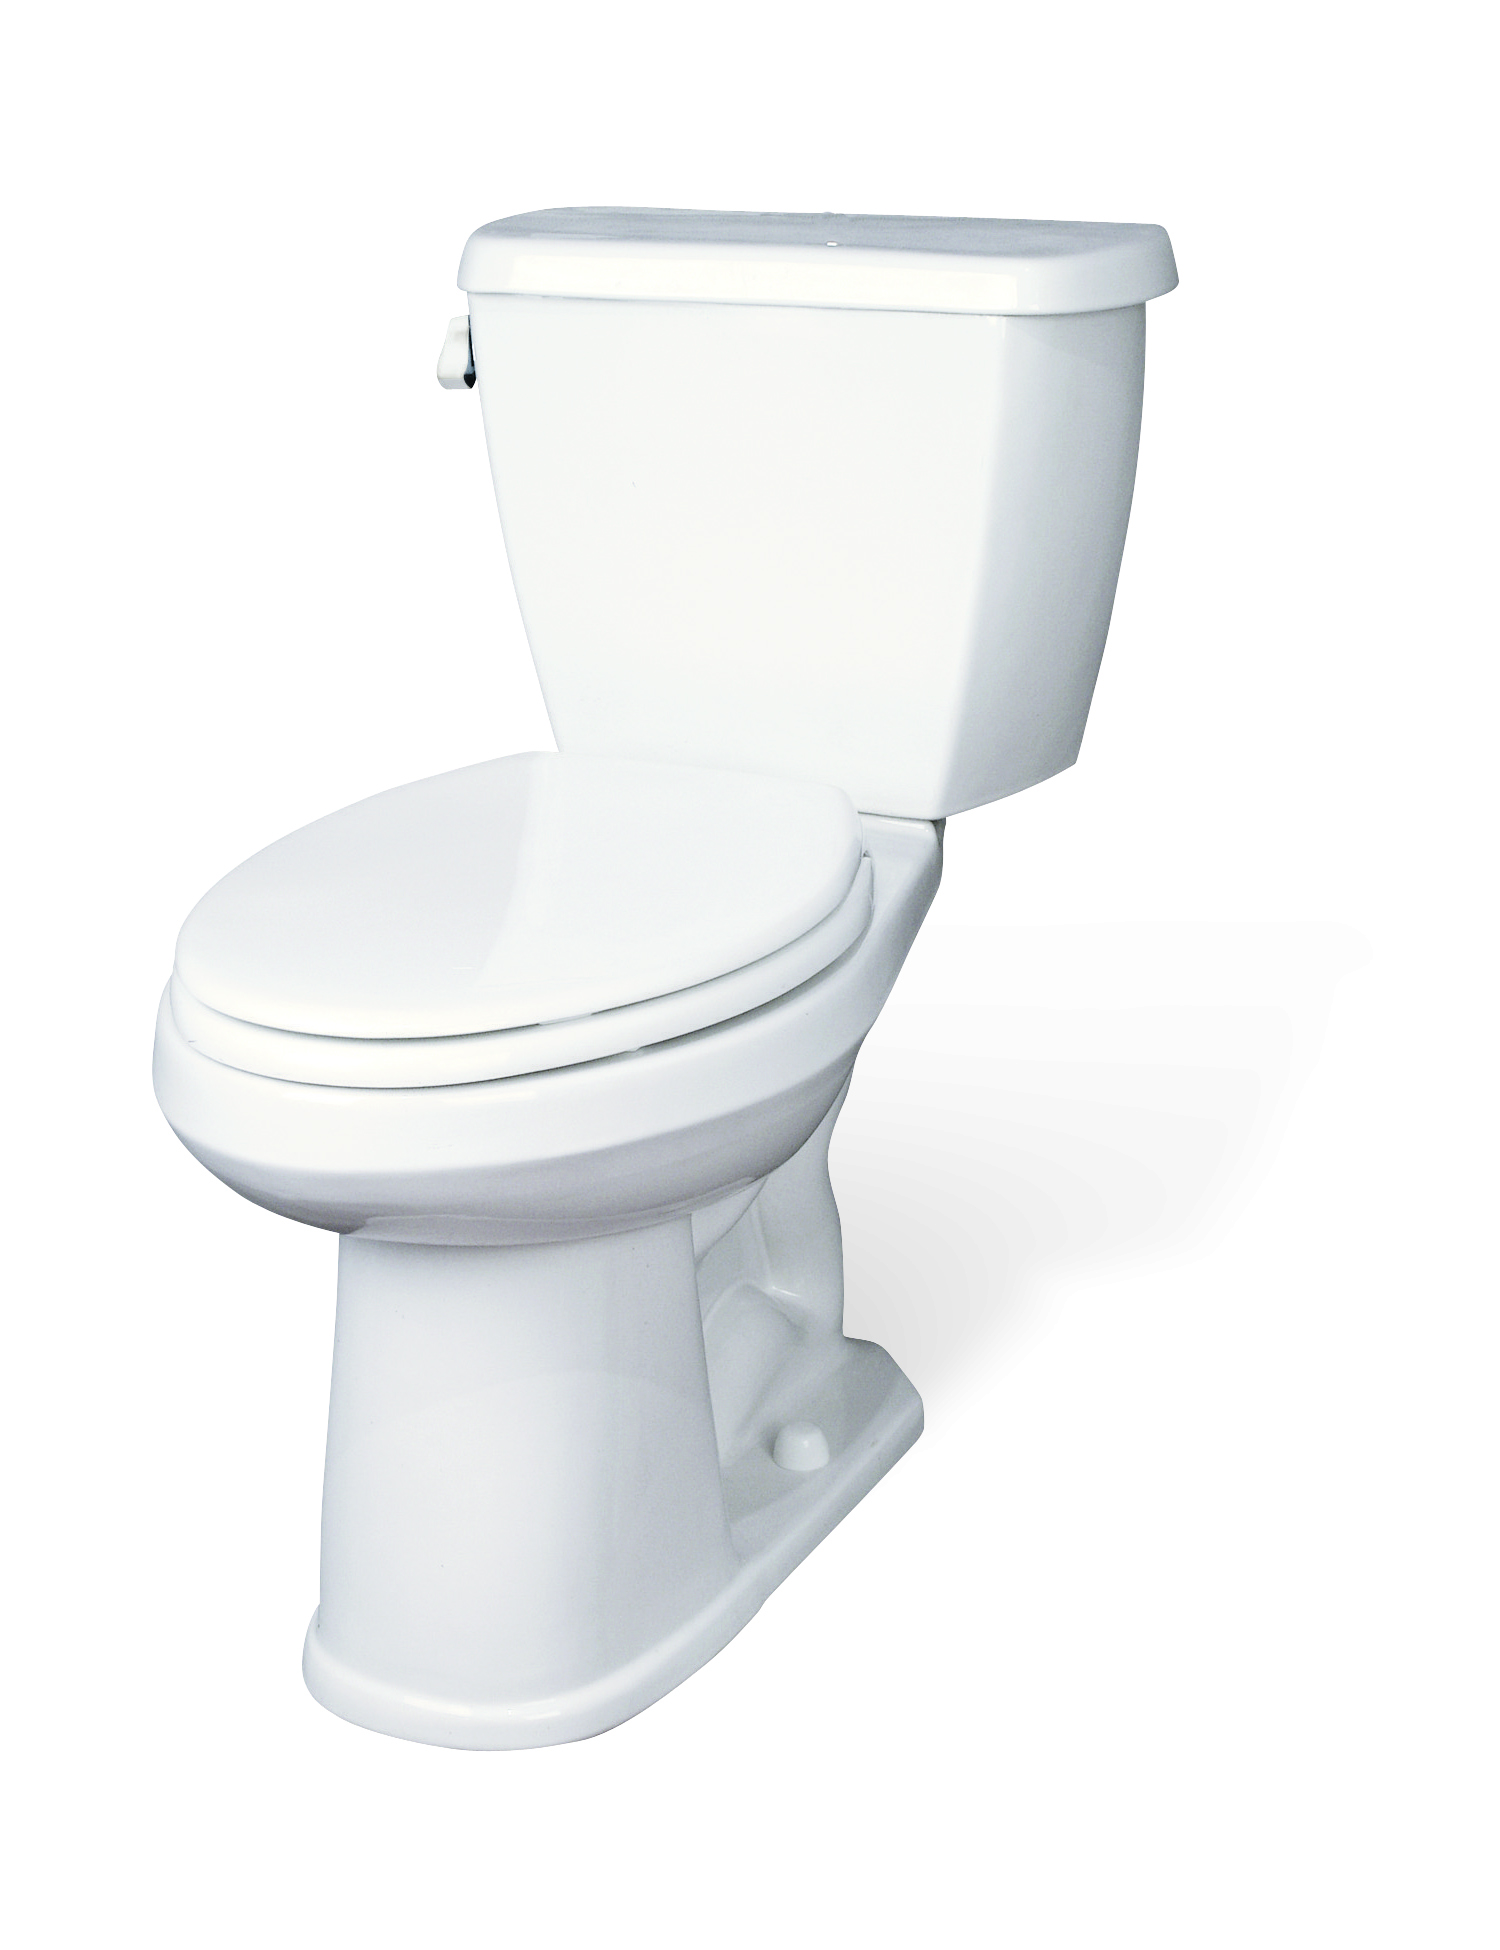 Country Toilet U0026 Bidet From American Standard Model